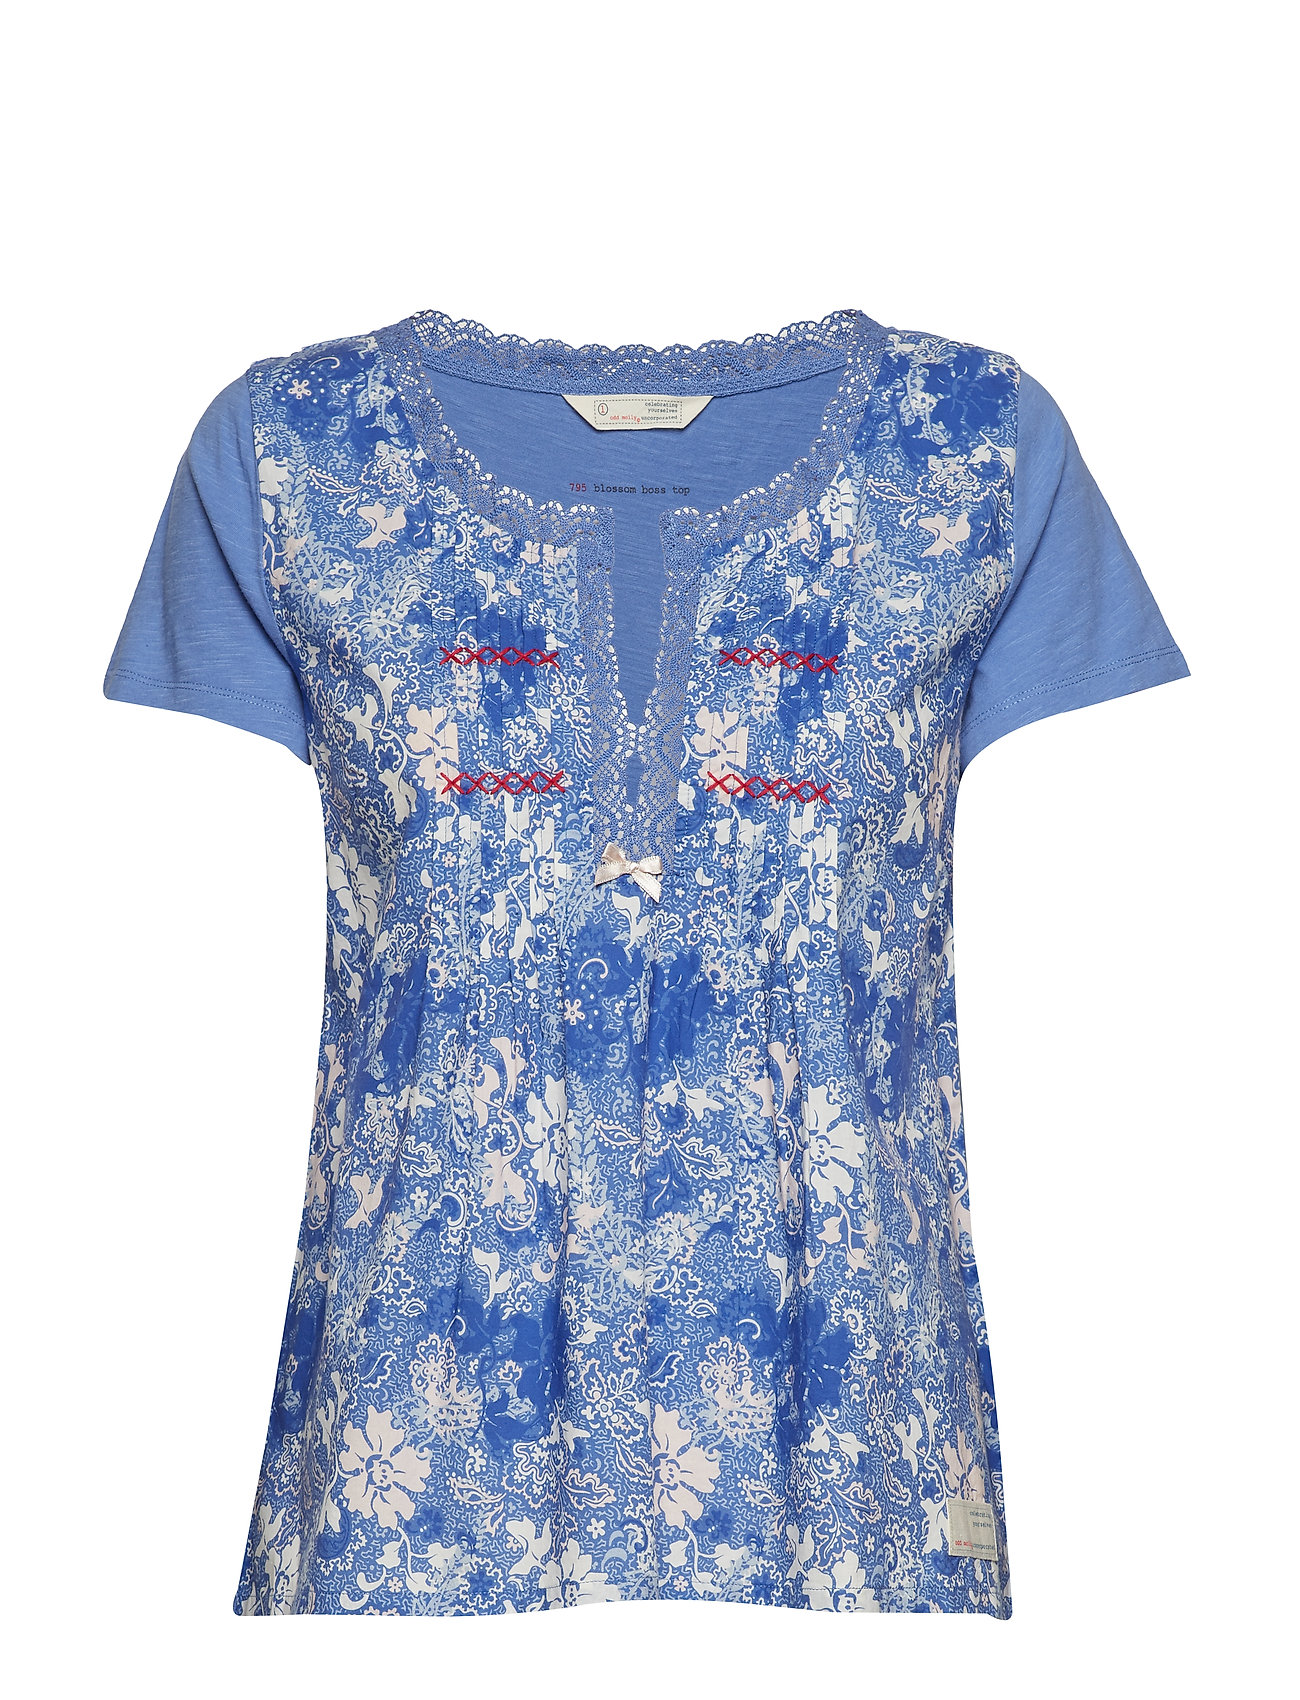 ODD MOLLY blossom boss top - SUMMER BLUE